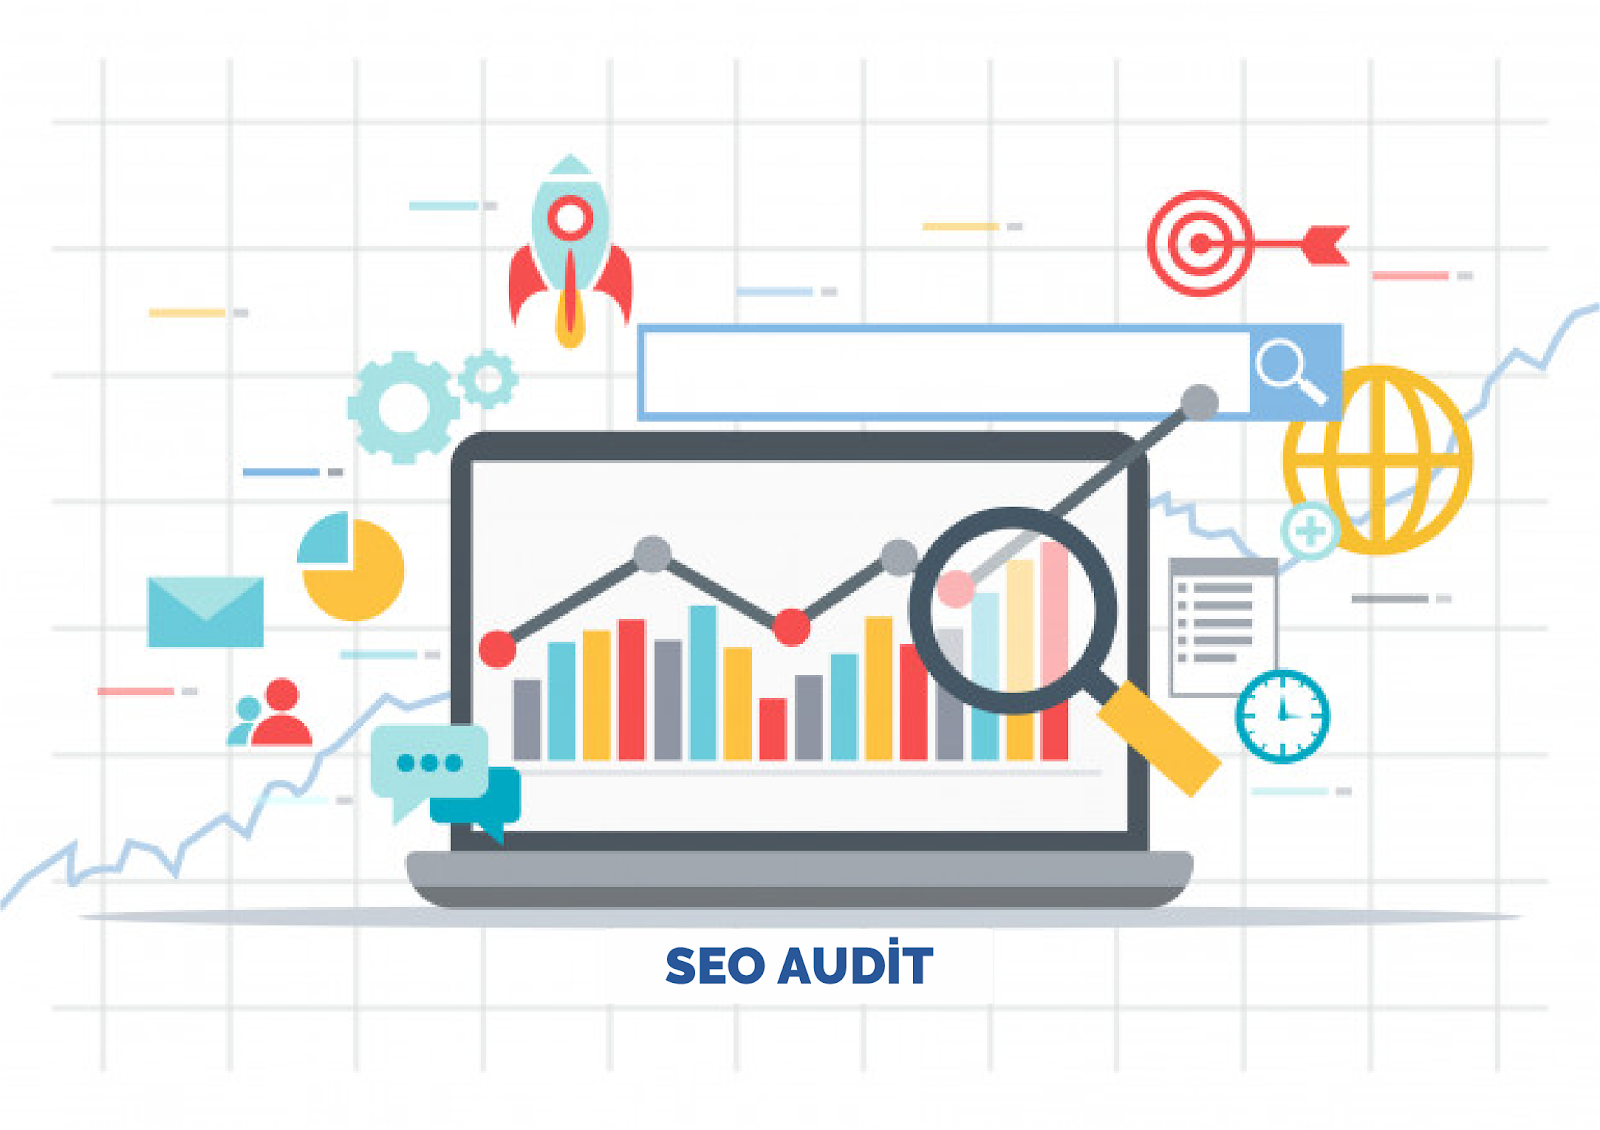 Maximize Site Potential With SEO Site Audit